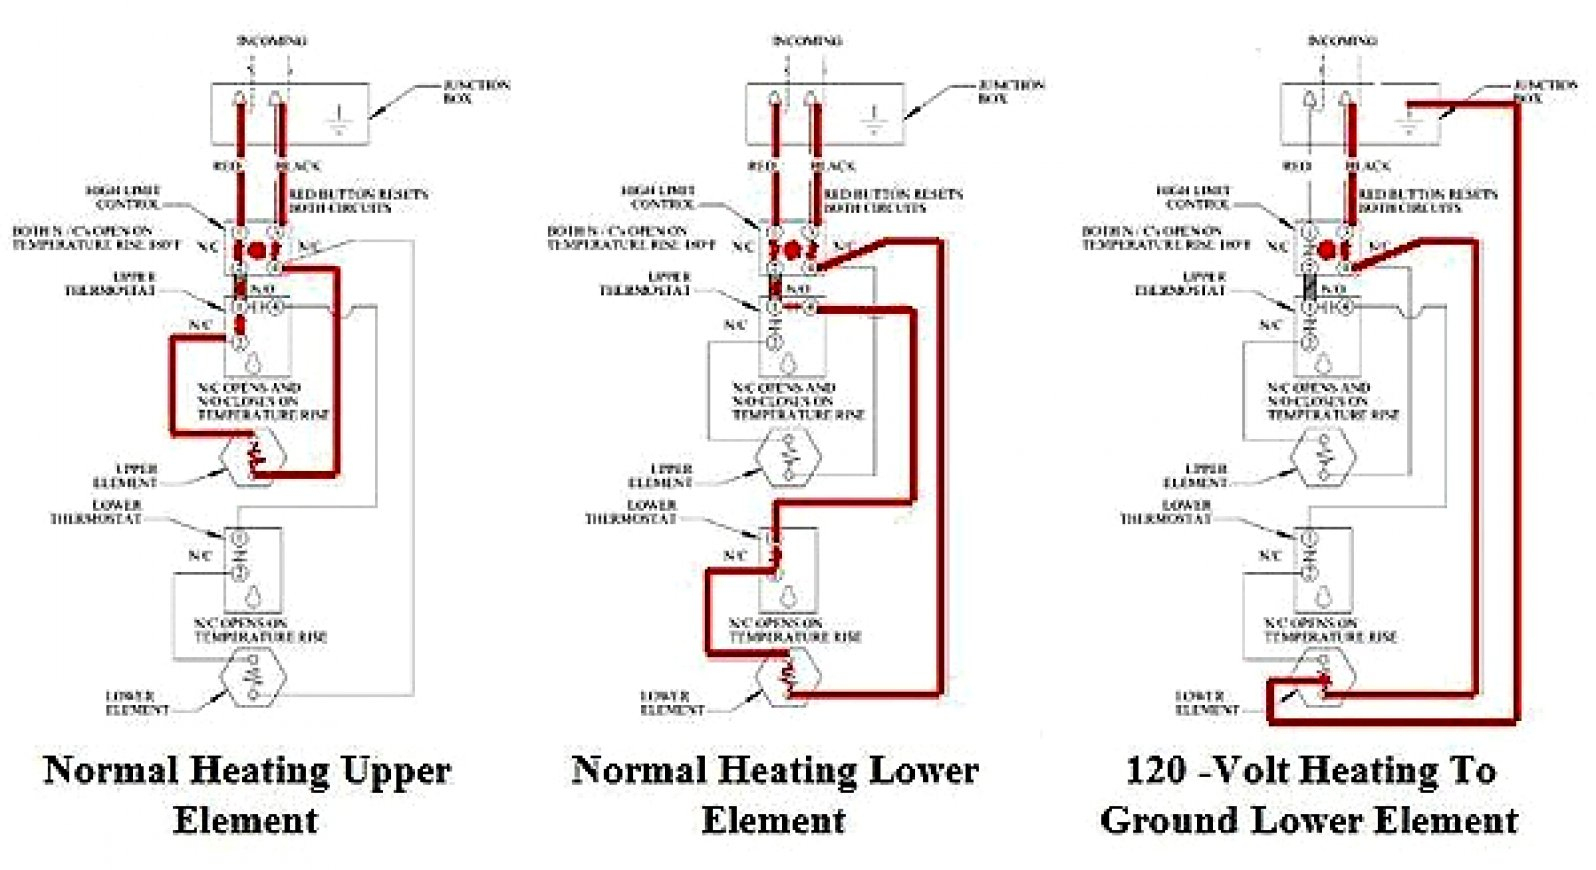 Electric Water Heater Thermostat Wiring Diagram | Wiring Diagram - Electric Water Heater Thermostat Wiring Diagram